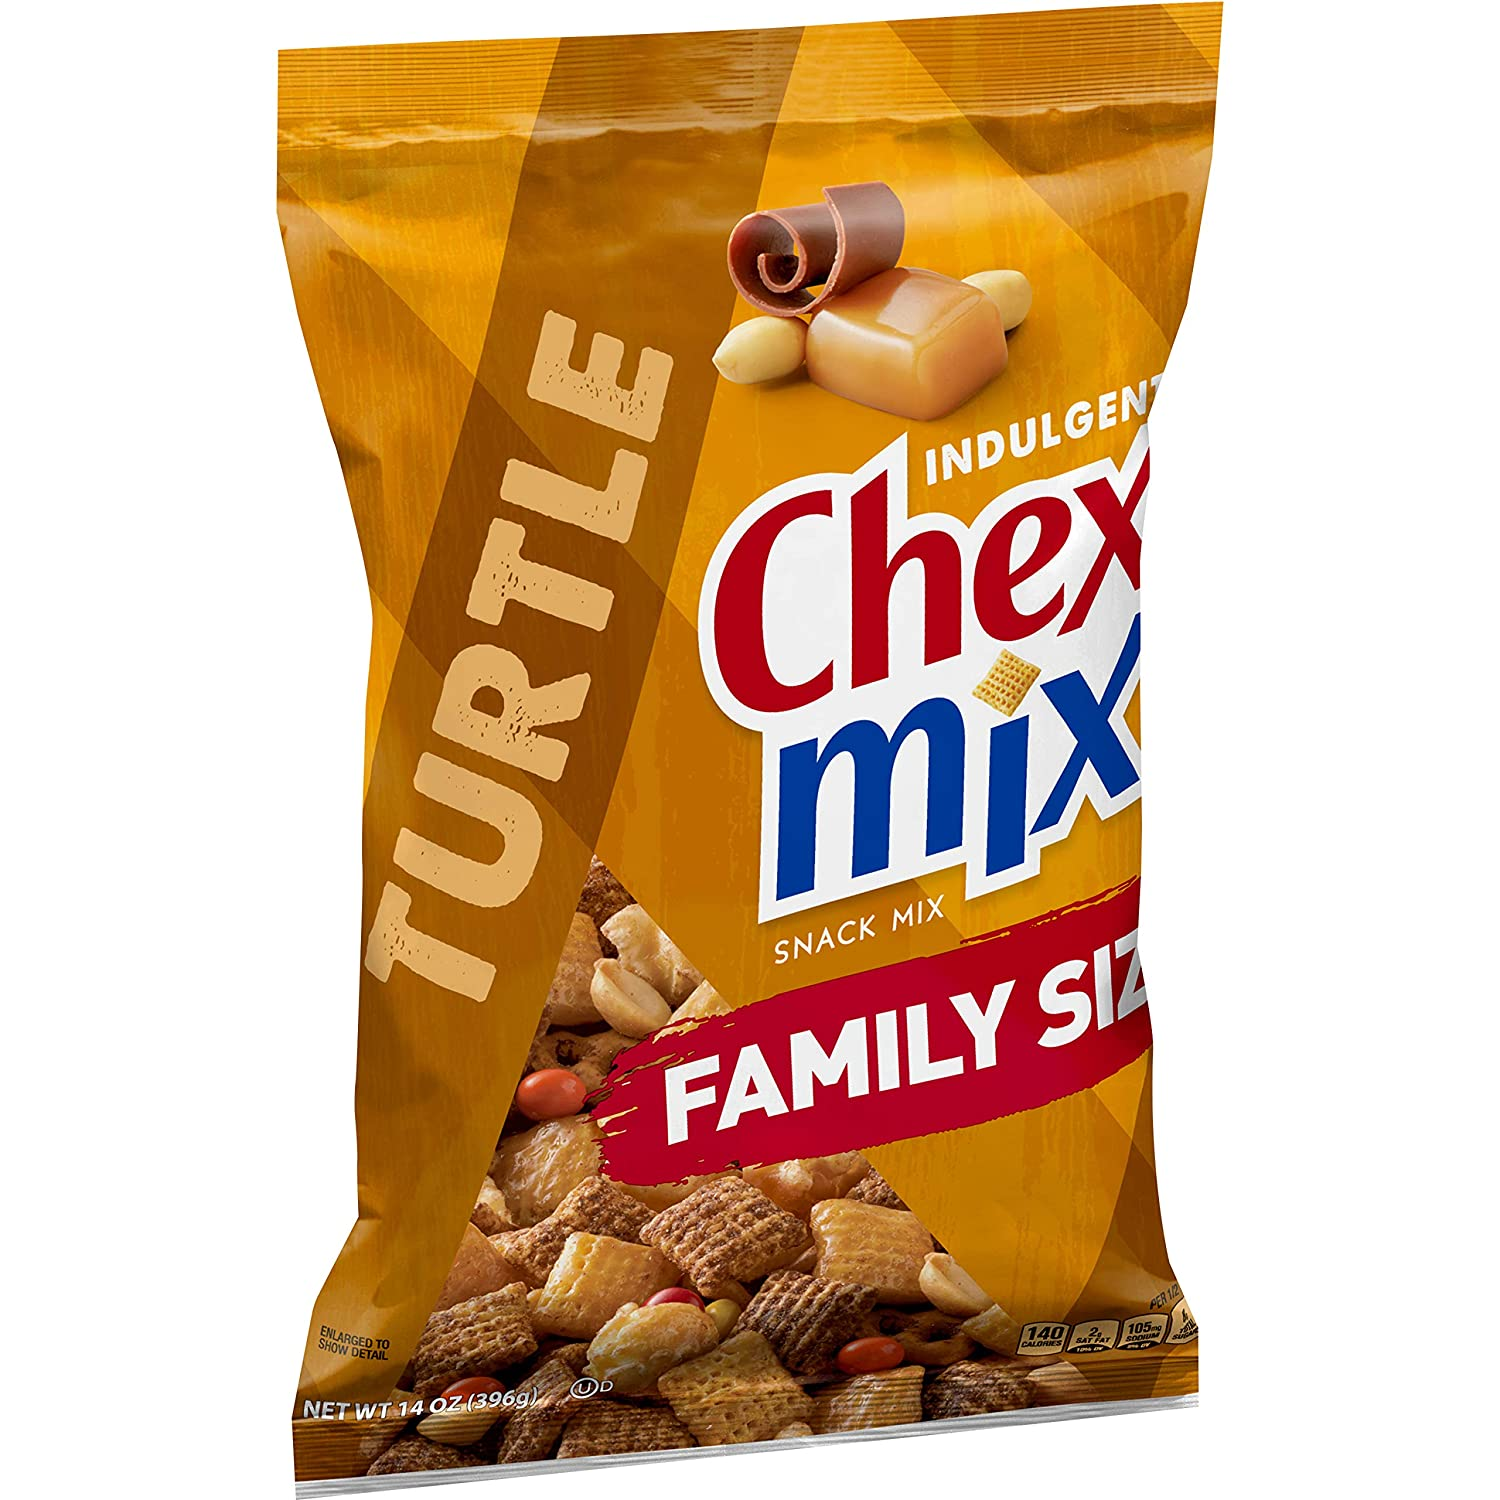 Chex Mix, Snack Mix, Indulgent Turtle, 14 oz. Bag